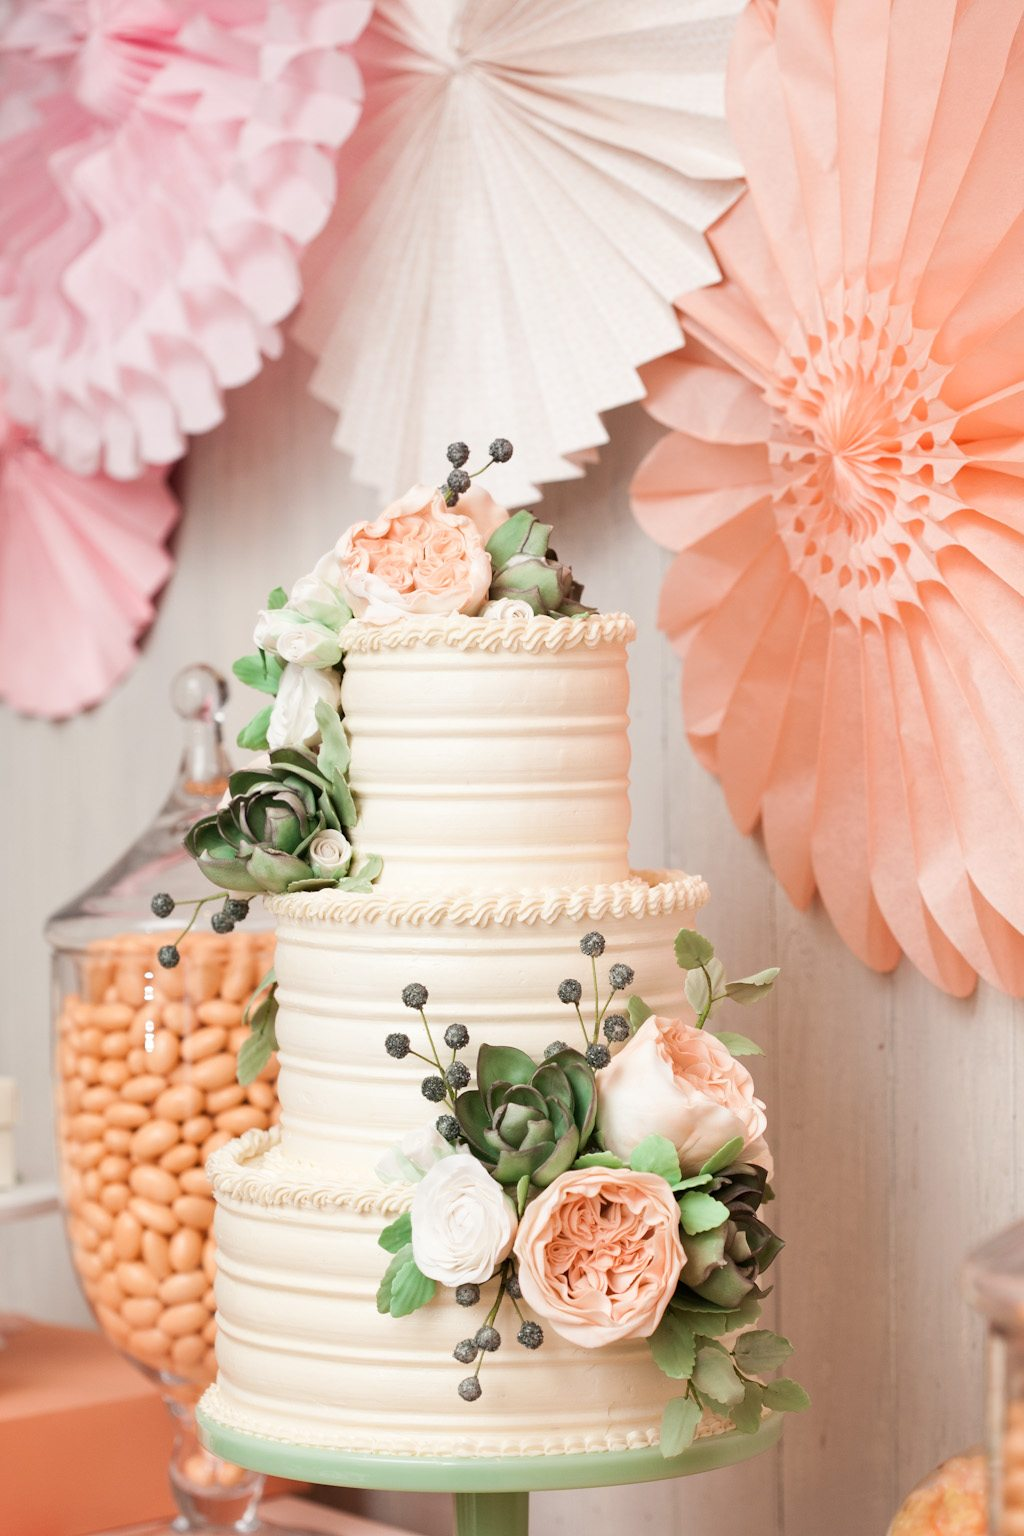 Cakes images wedding cake hd wallpaper and background photos - Wedding Cake With Flowers